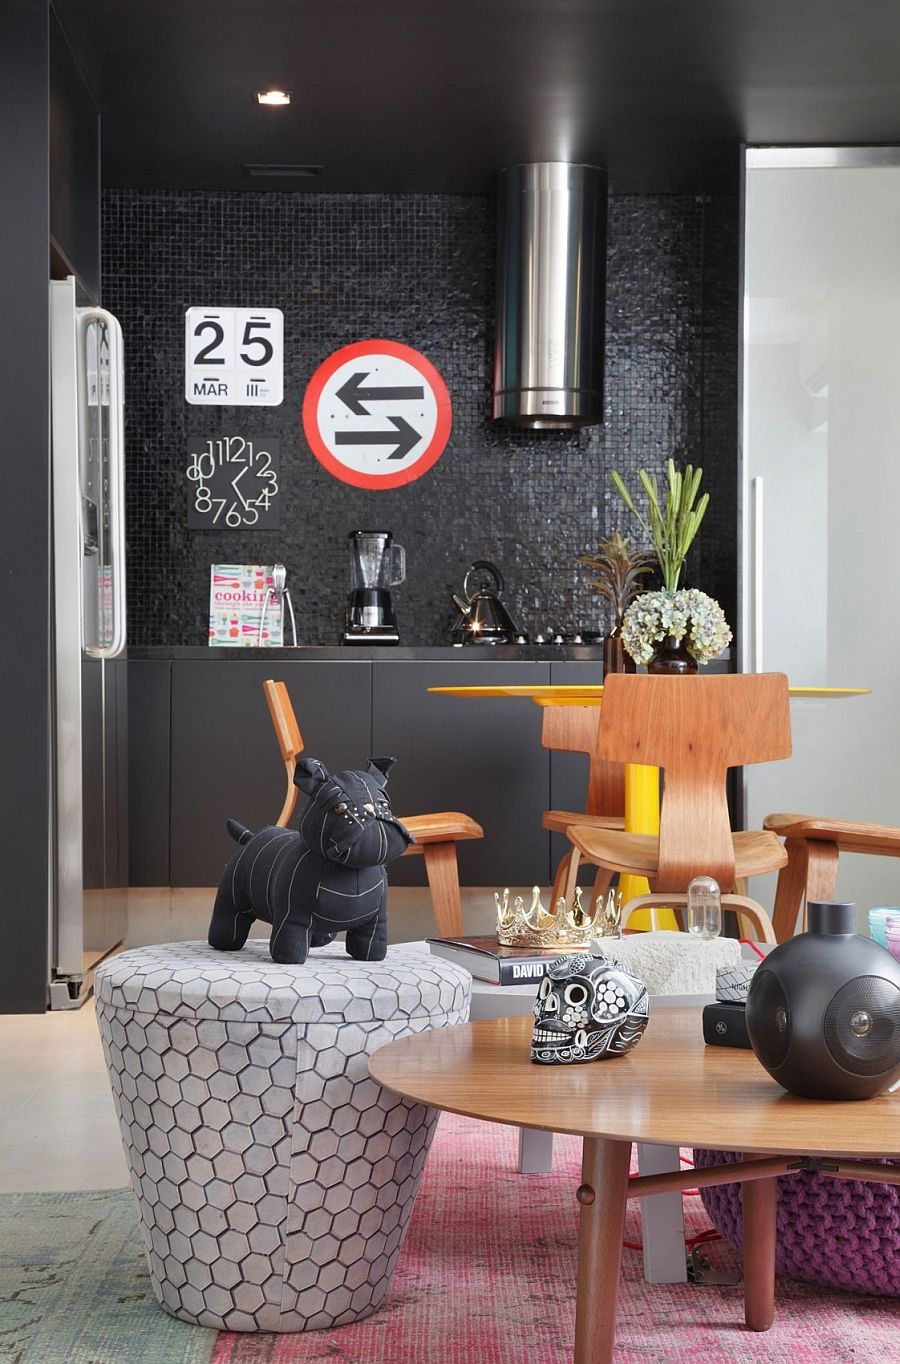 Eclectic mix of decor for the living room and kitchen